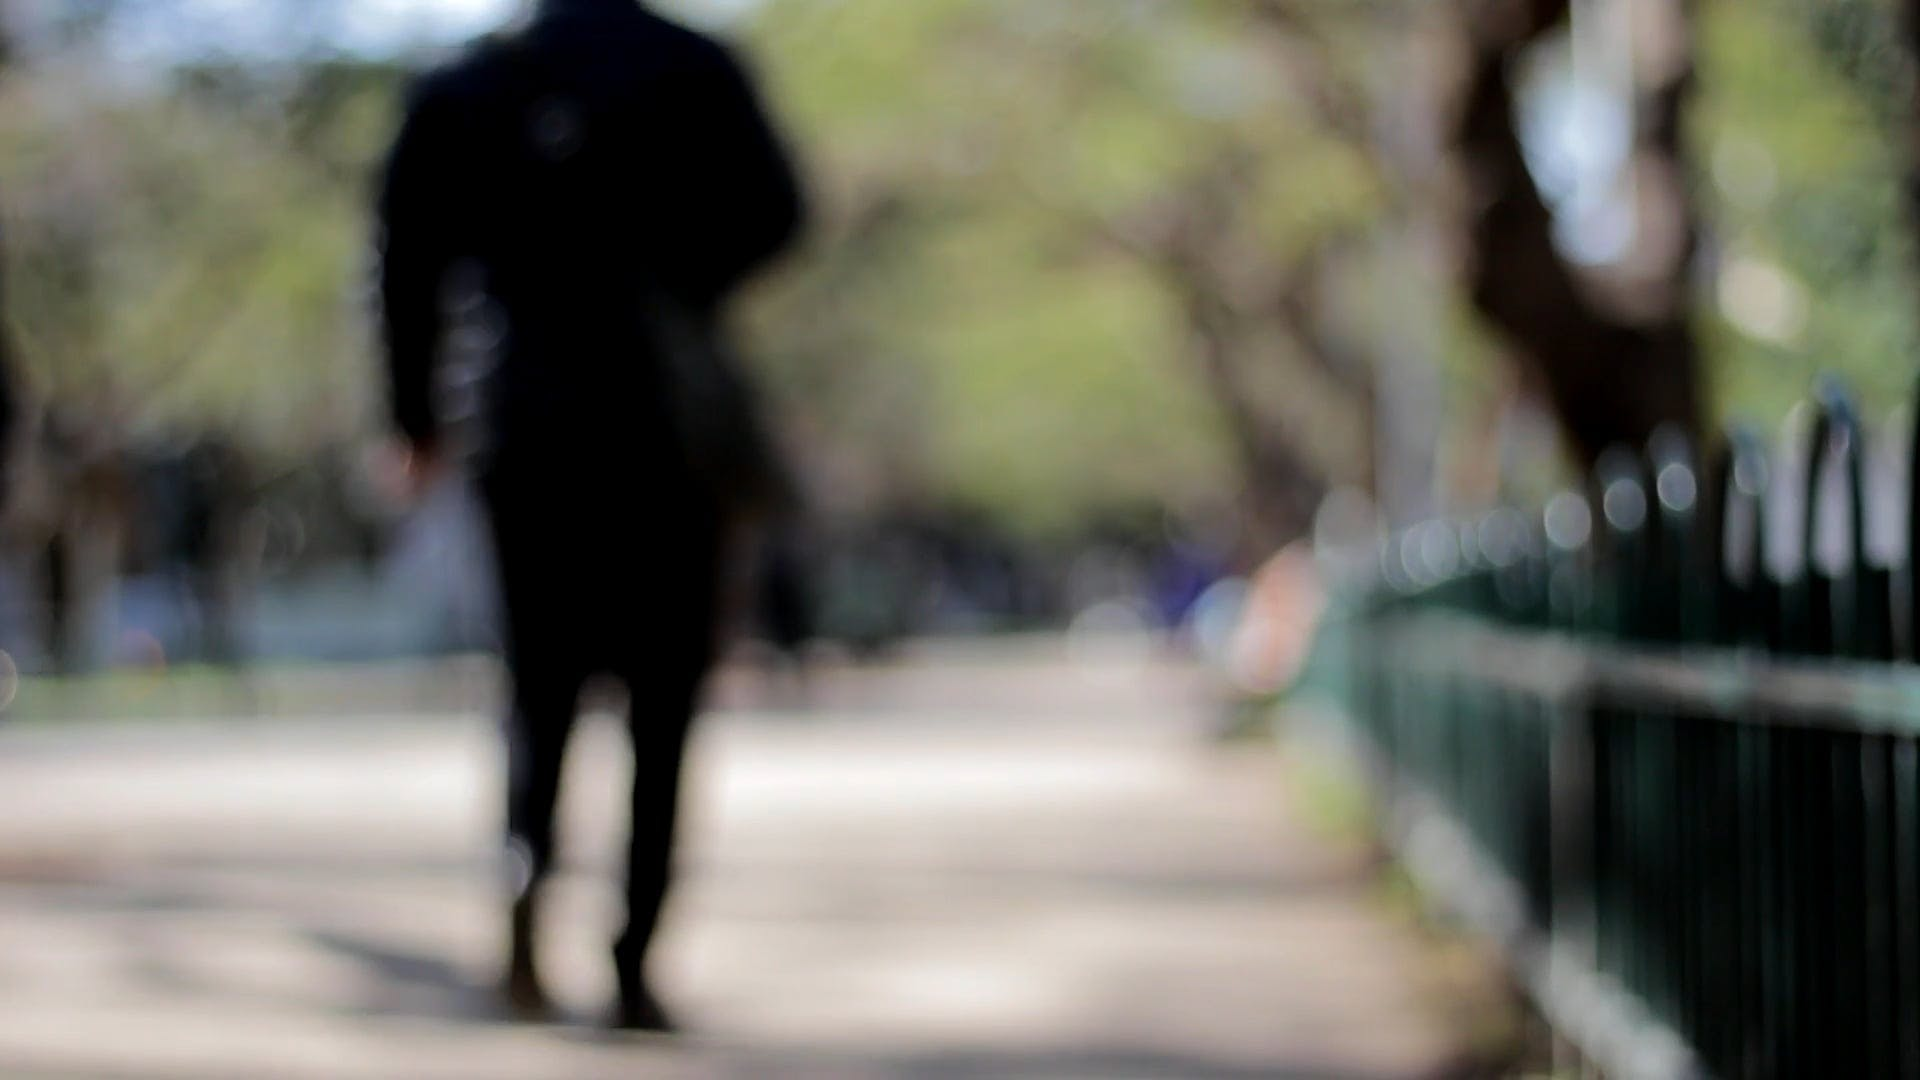 Out Of Focus Video Of People Walking